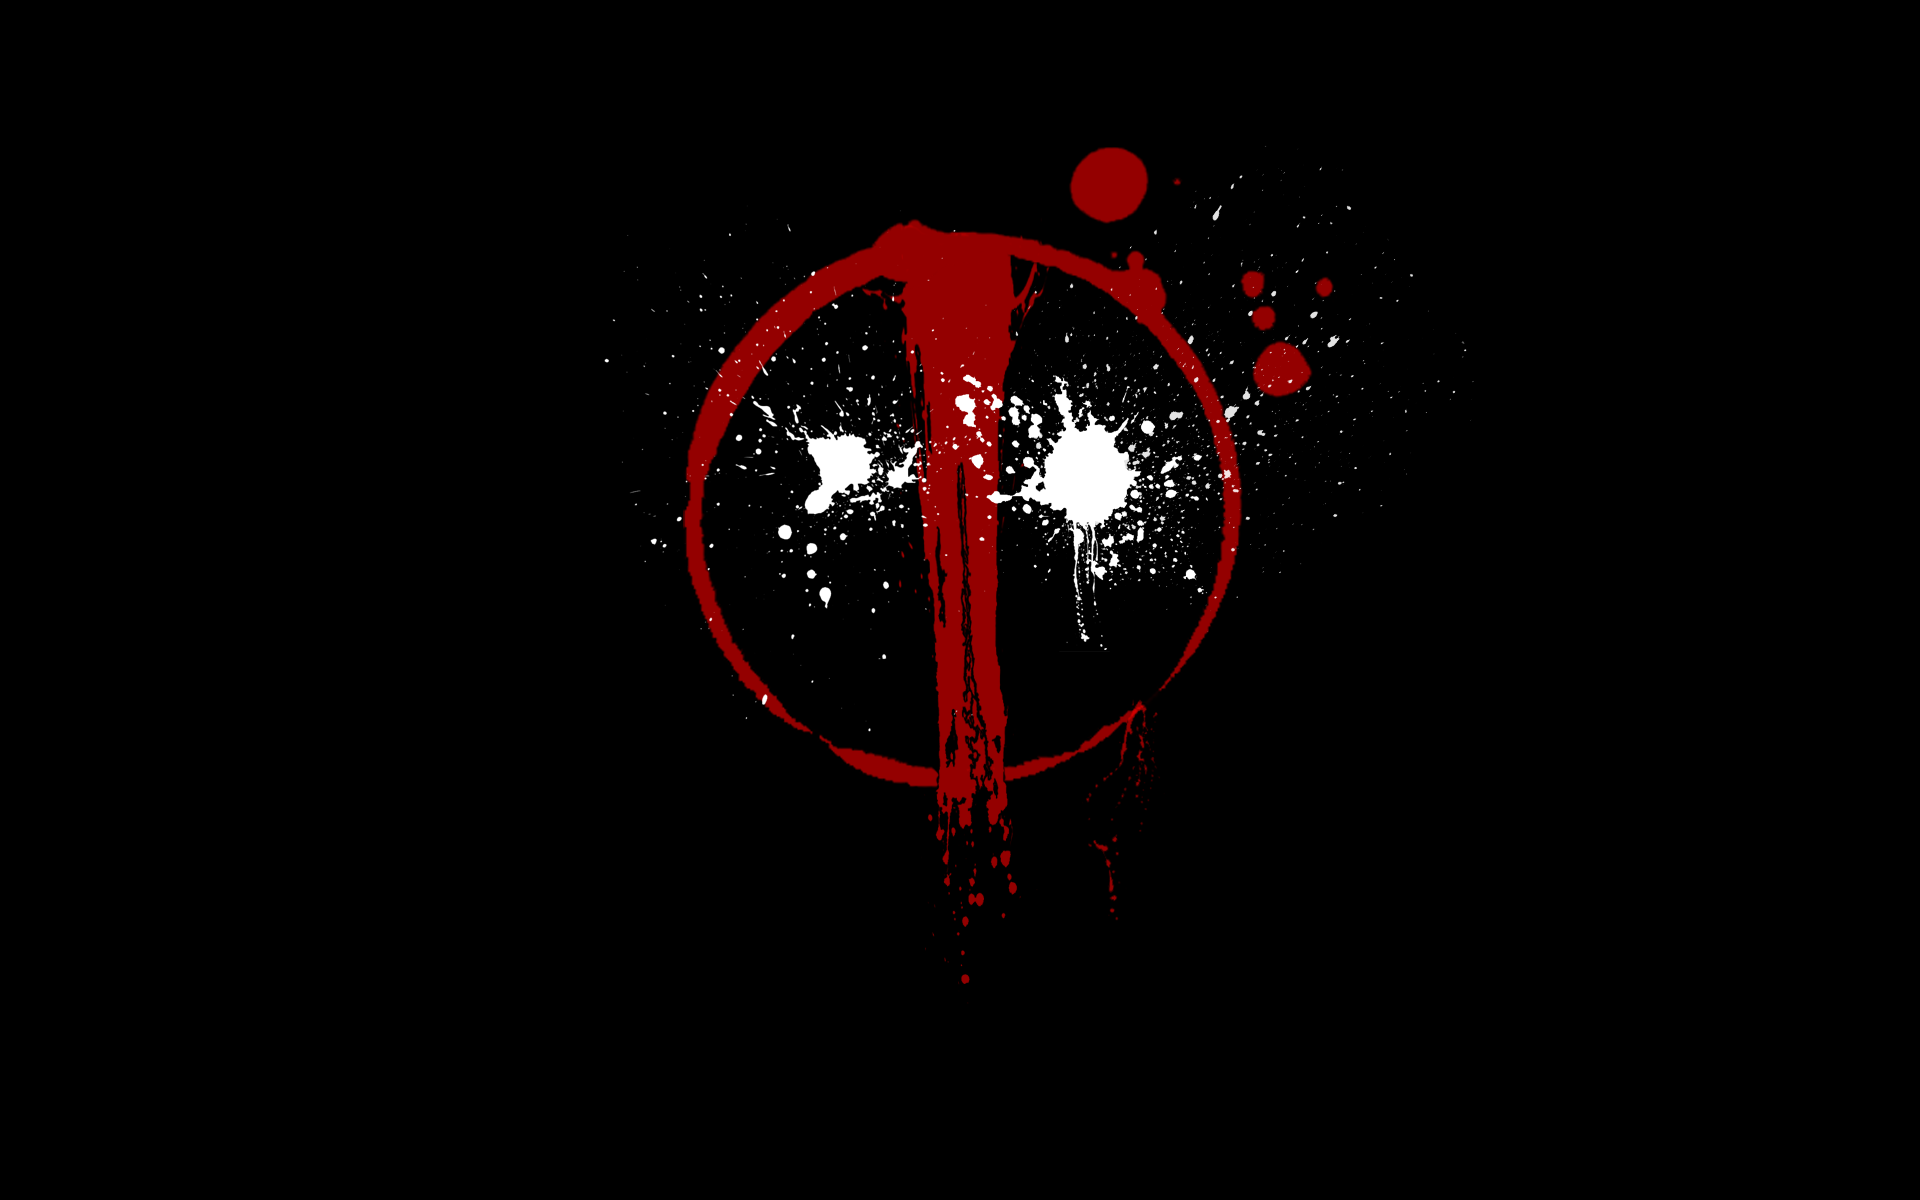 Brand Car Logo >> Deadpool Wallpaper 16 - [1920x1200]